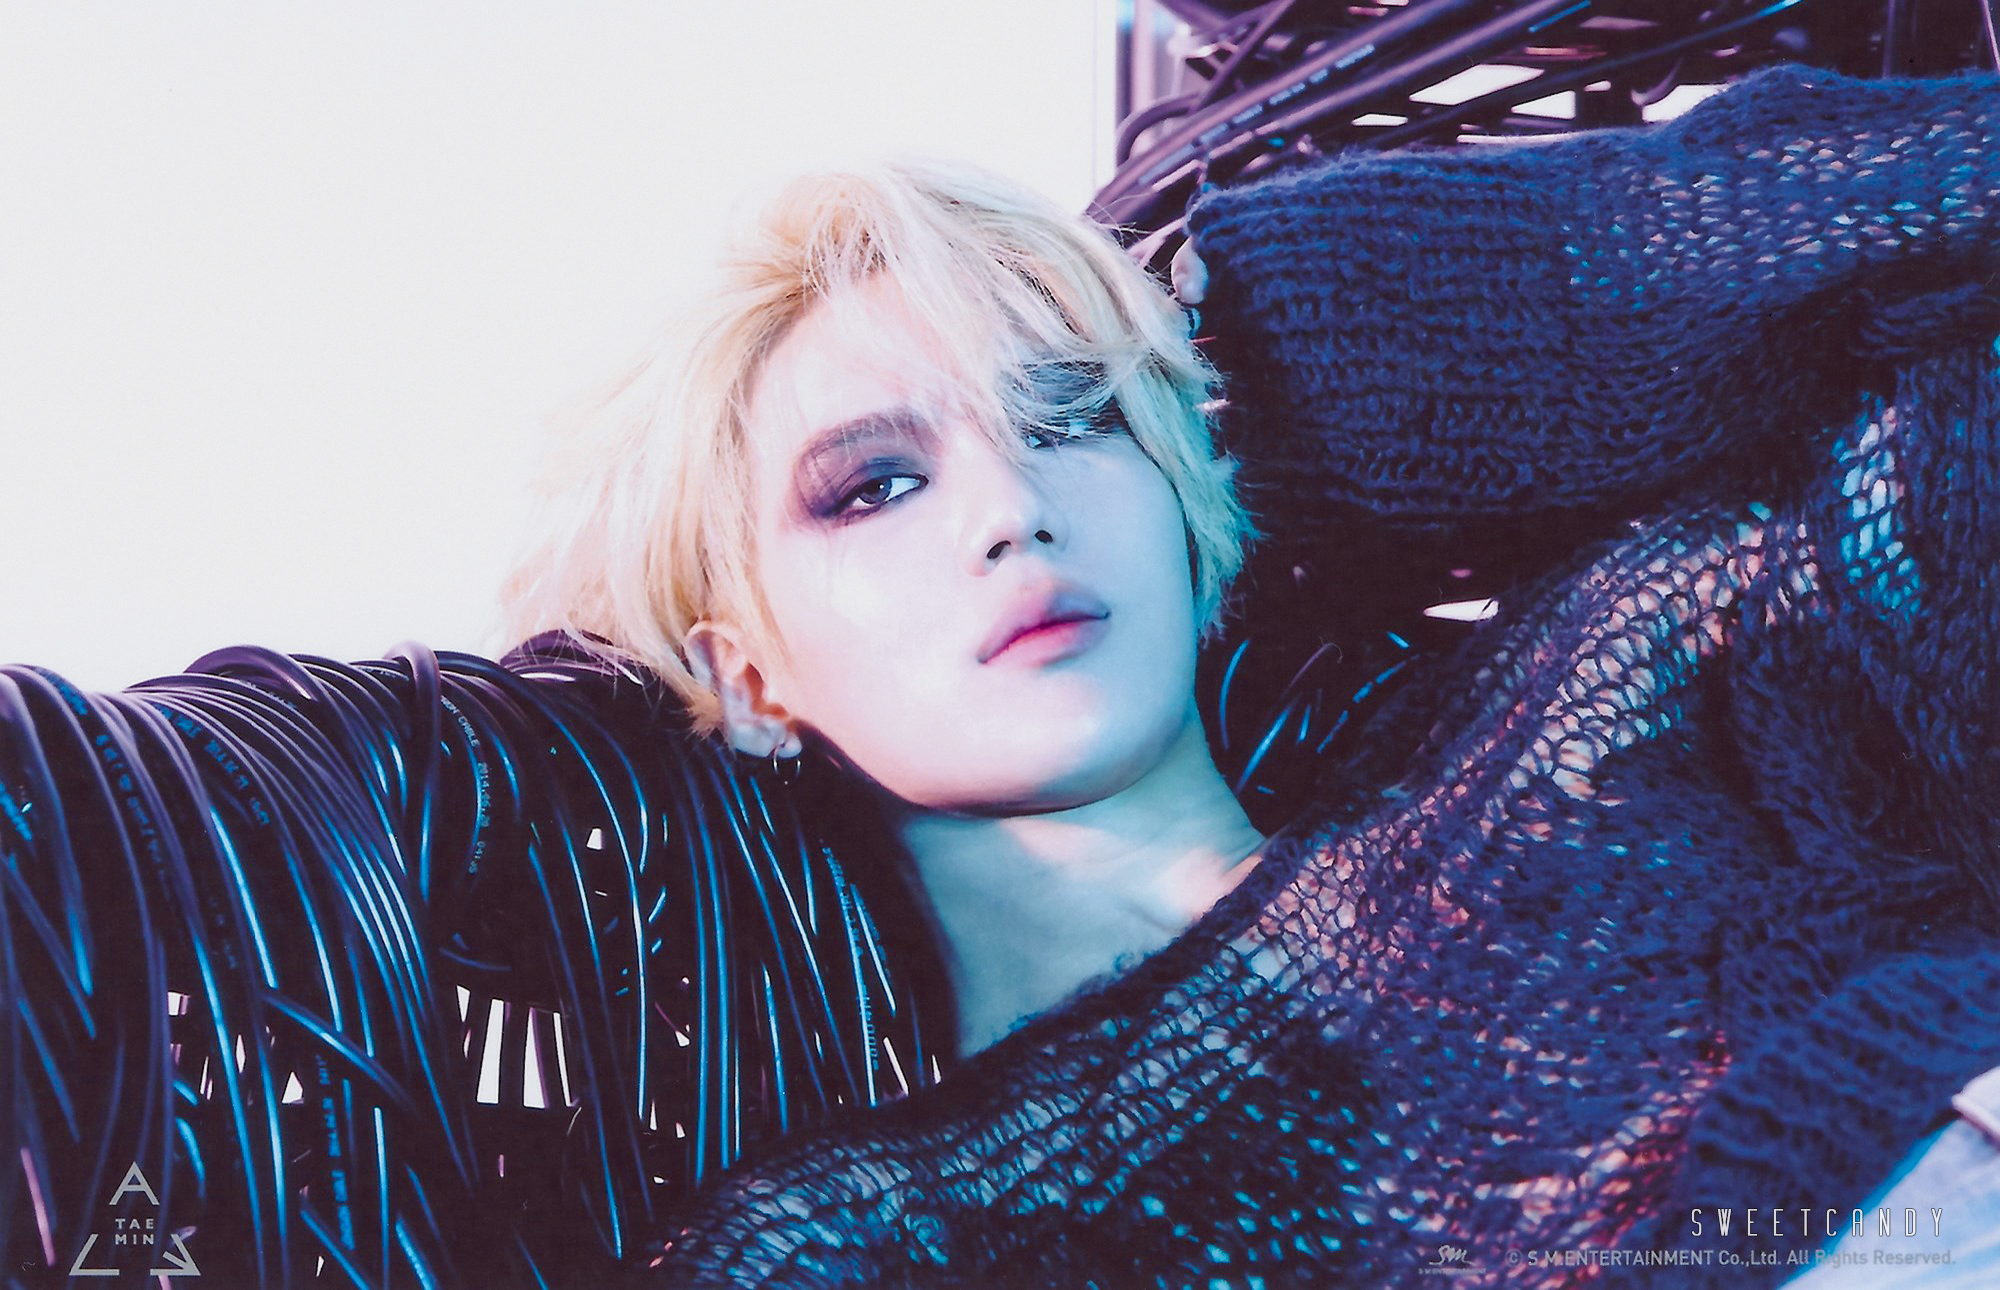 SHINee Taemin   Lee Taemin Wallpaper 37577495 2000x1290